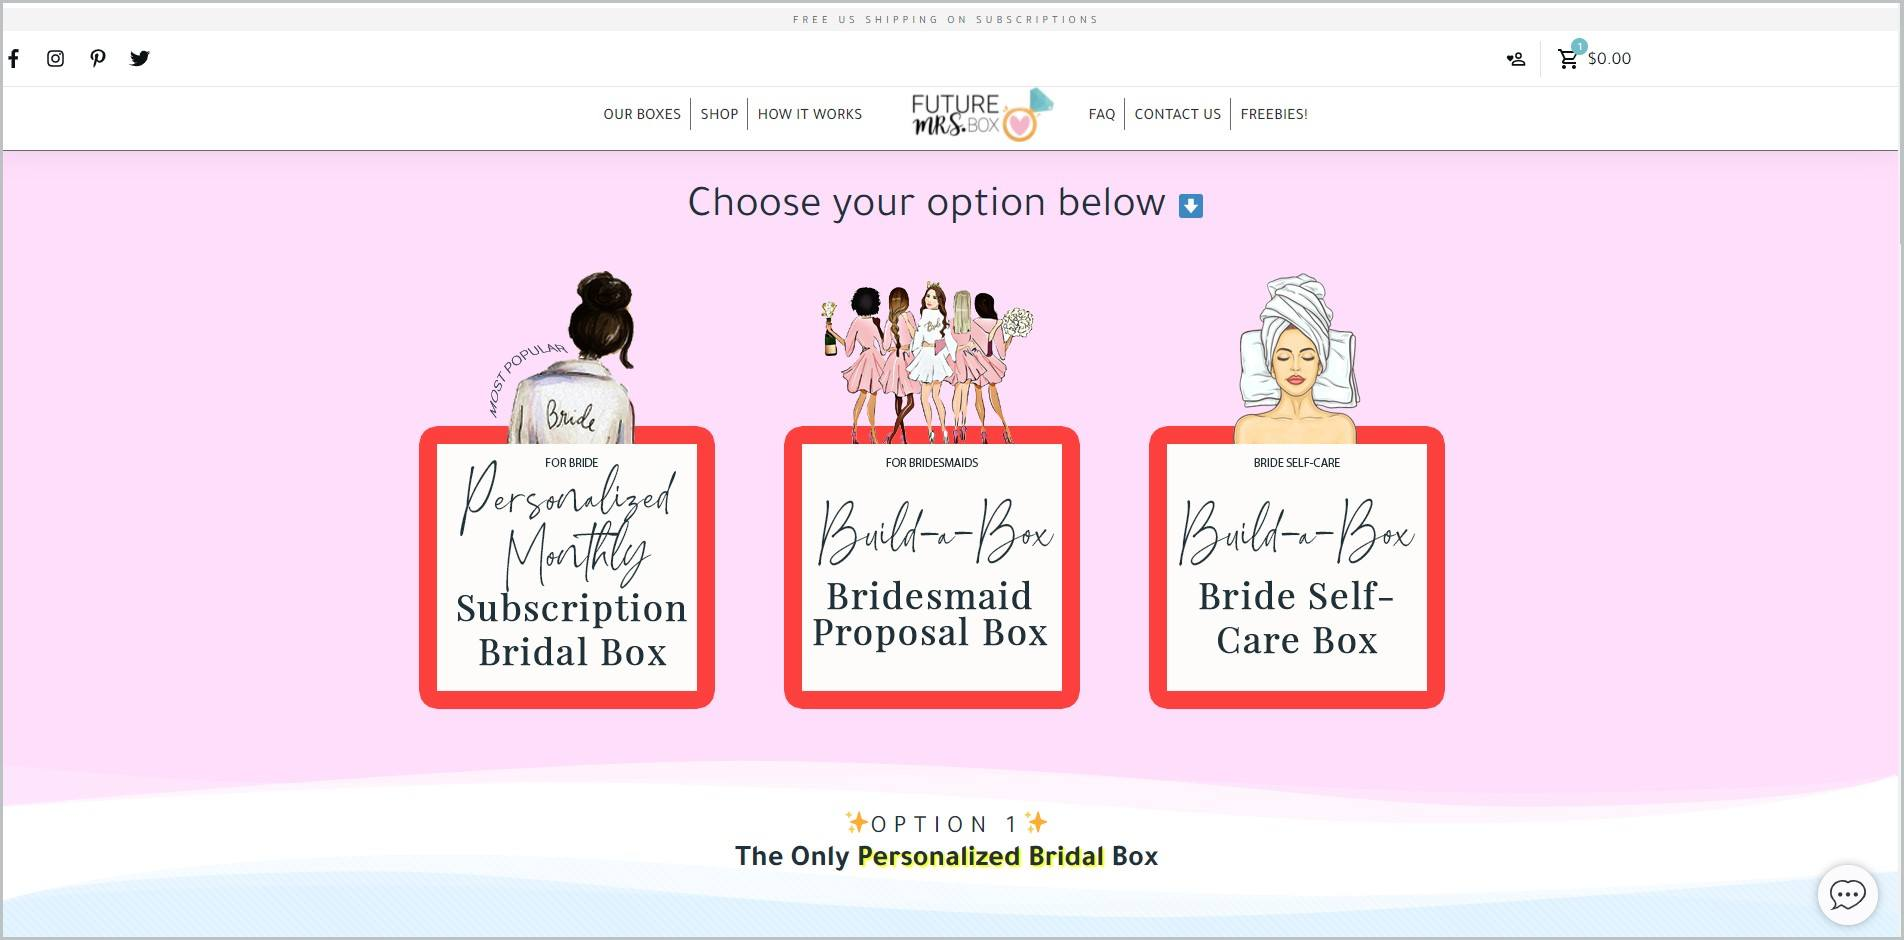 screenshot of Future Mrs Box homepage with a white header bearing the website's name and logo, with the main navigation menu, it also features the different types of boxes they offer